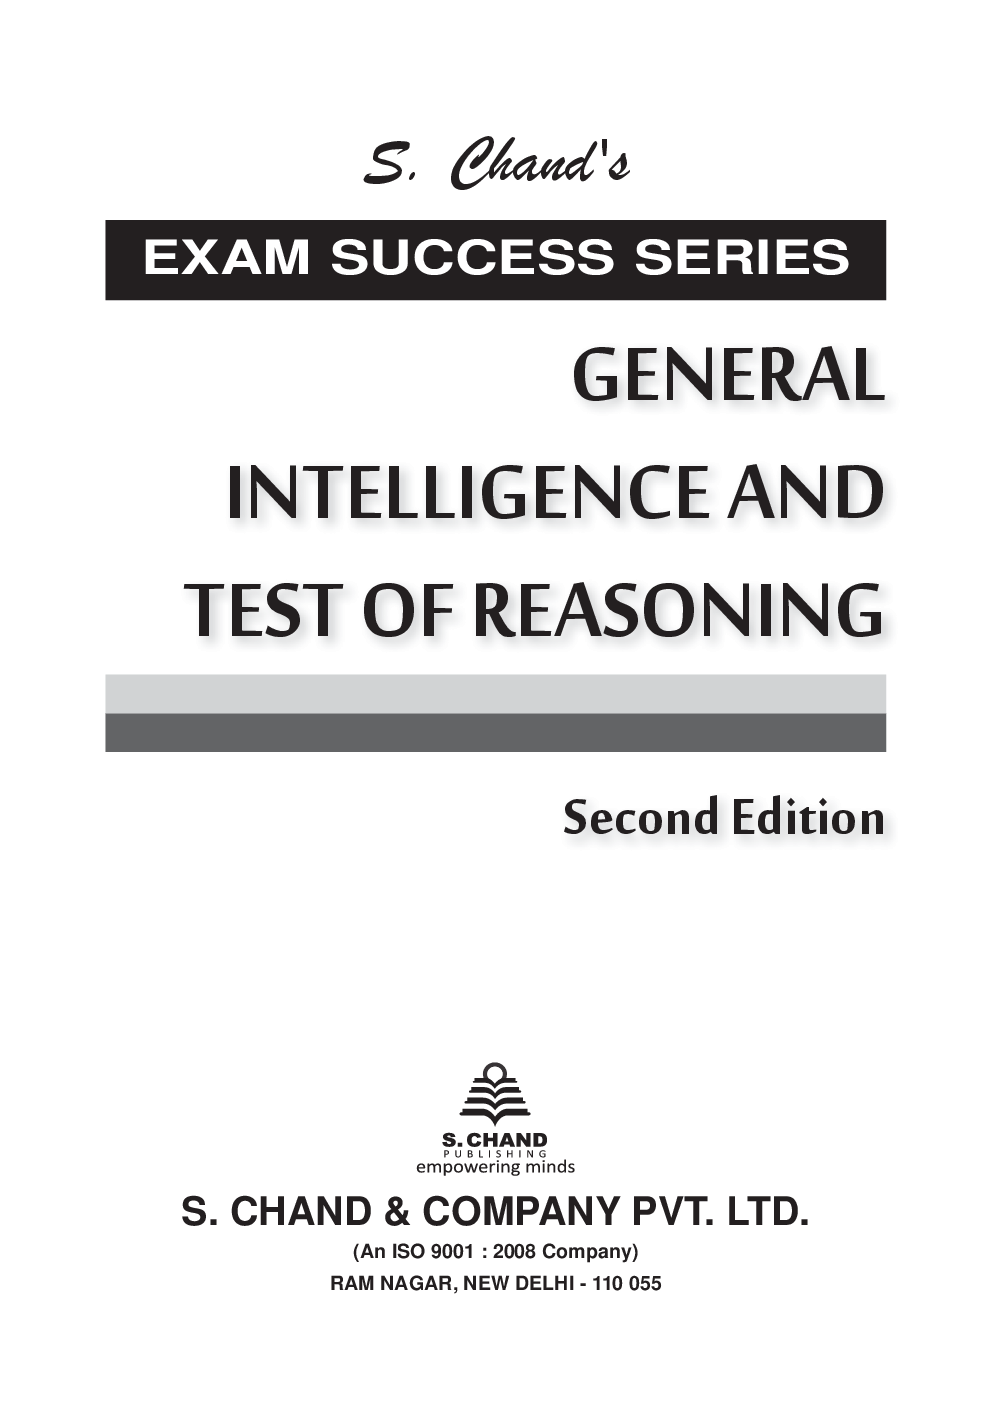 General Intelligence And Test Of Reasoning - Page 2